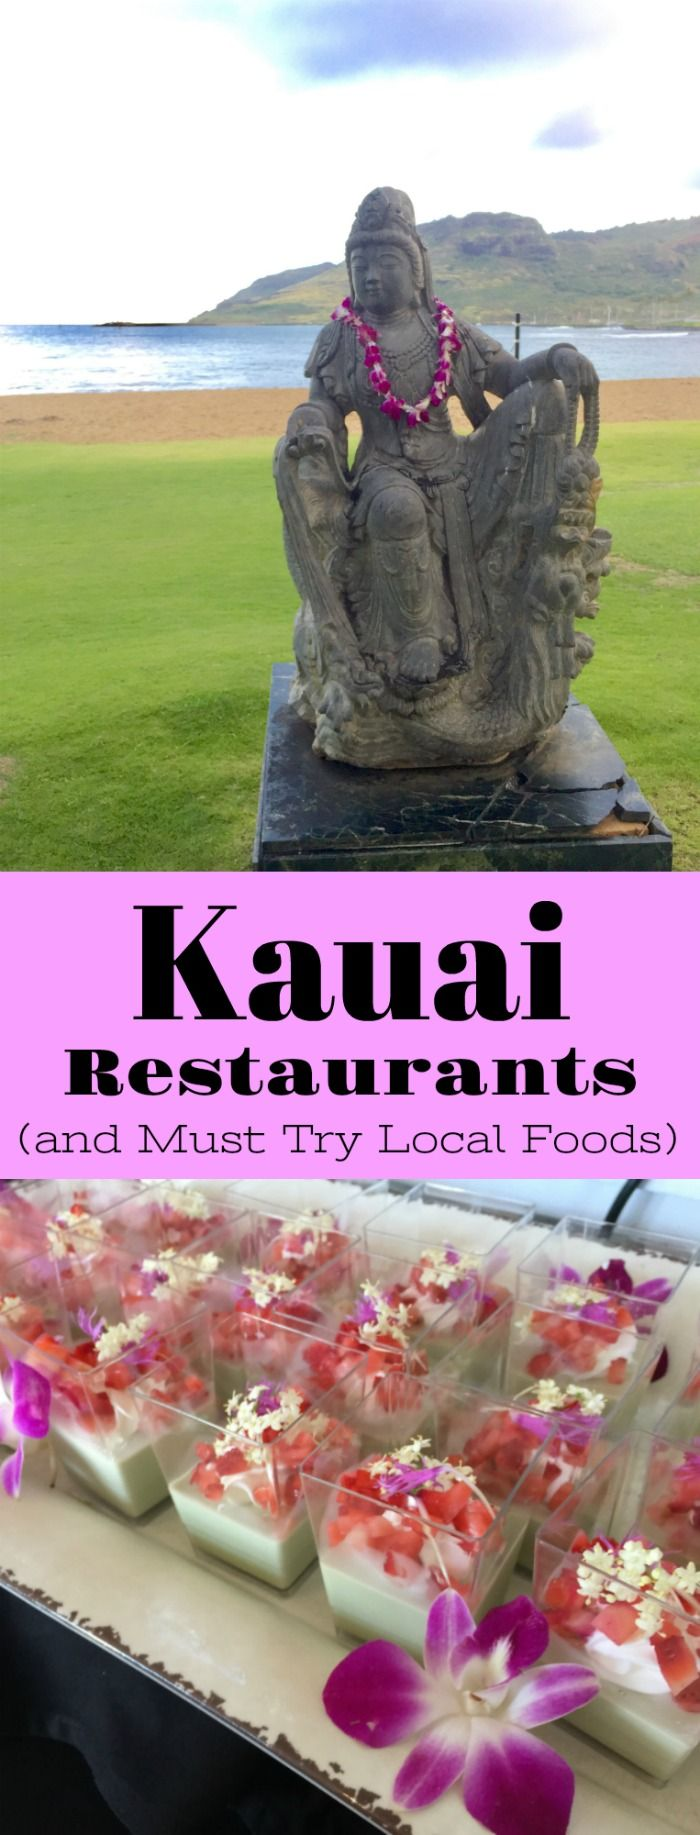 Kauai Restaurants and Must Try Local Foods